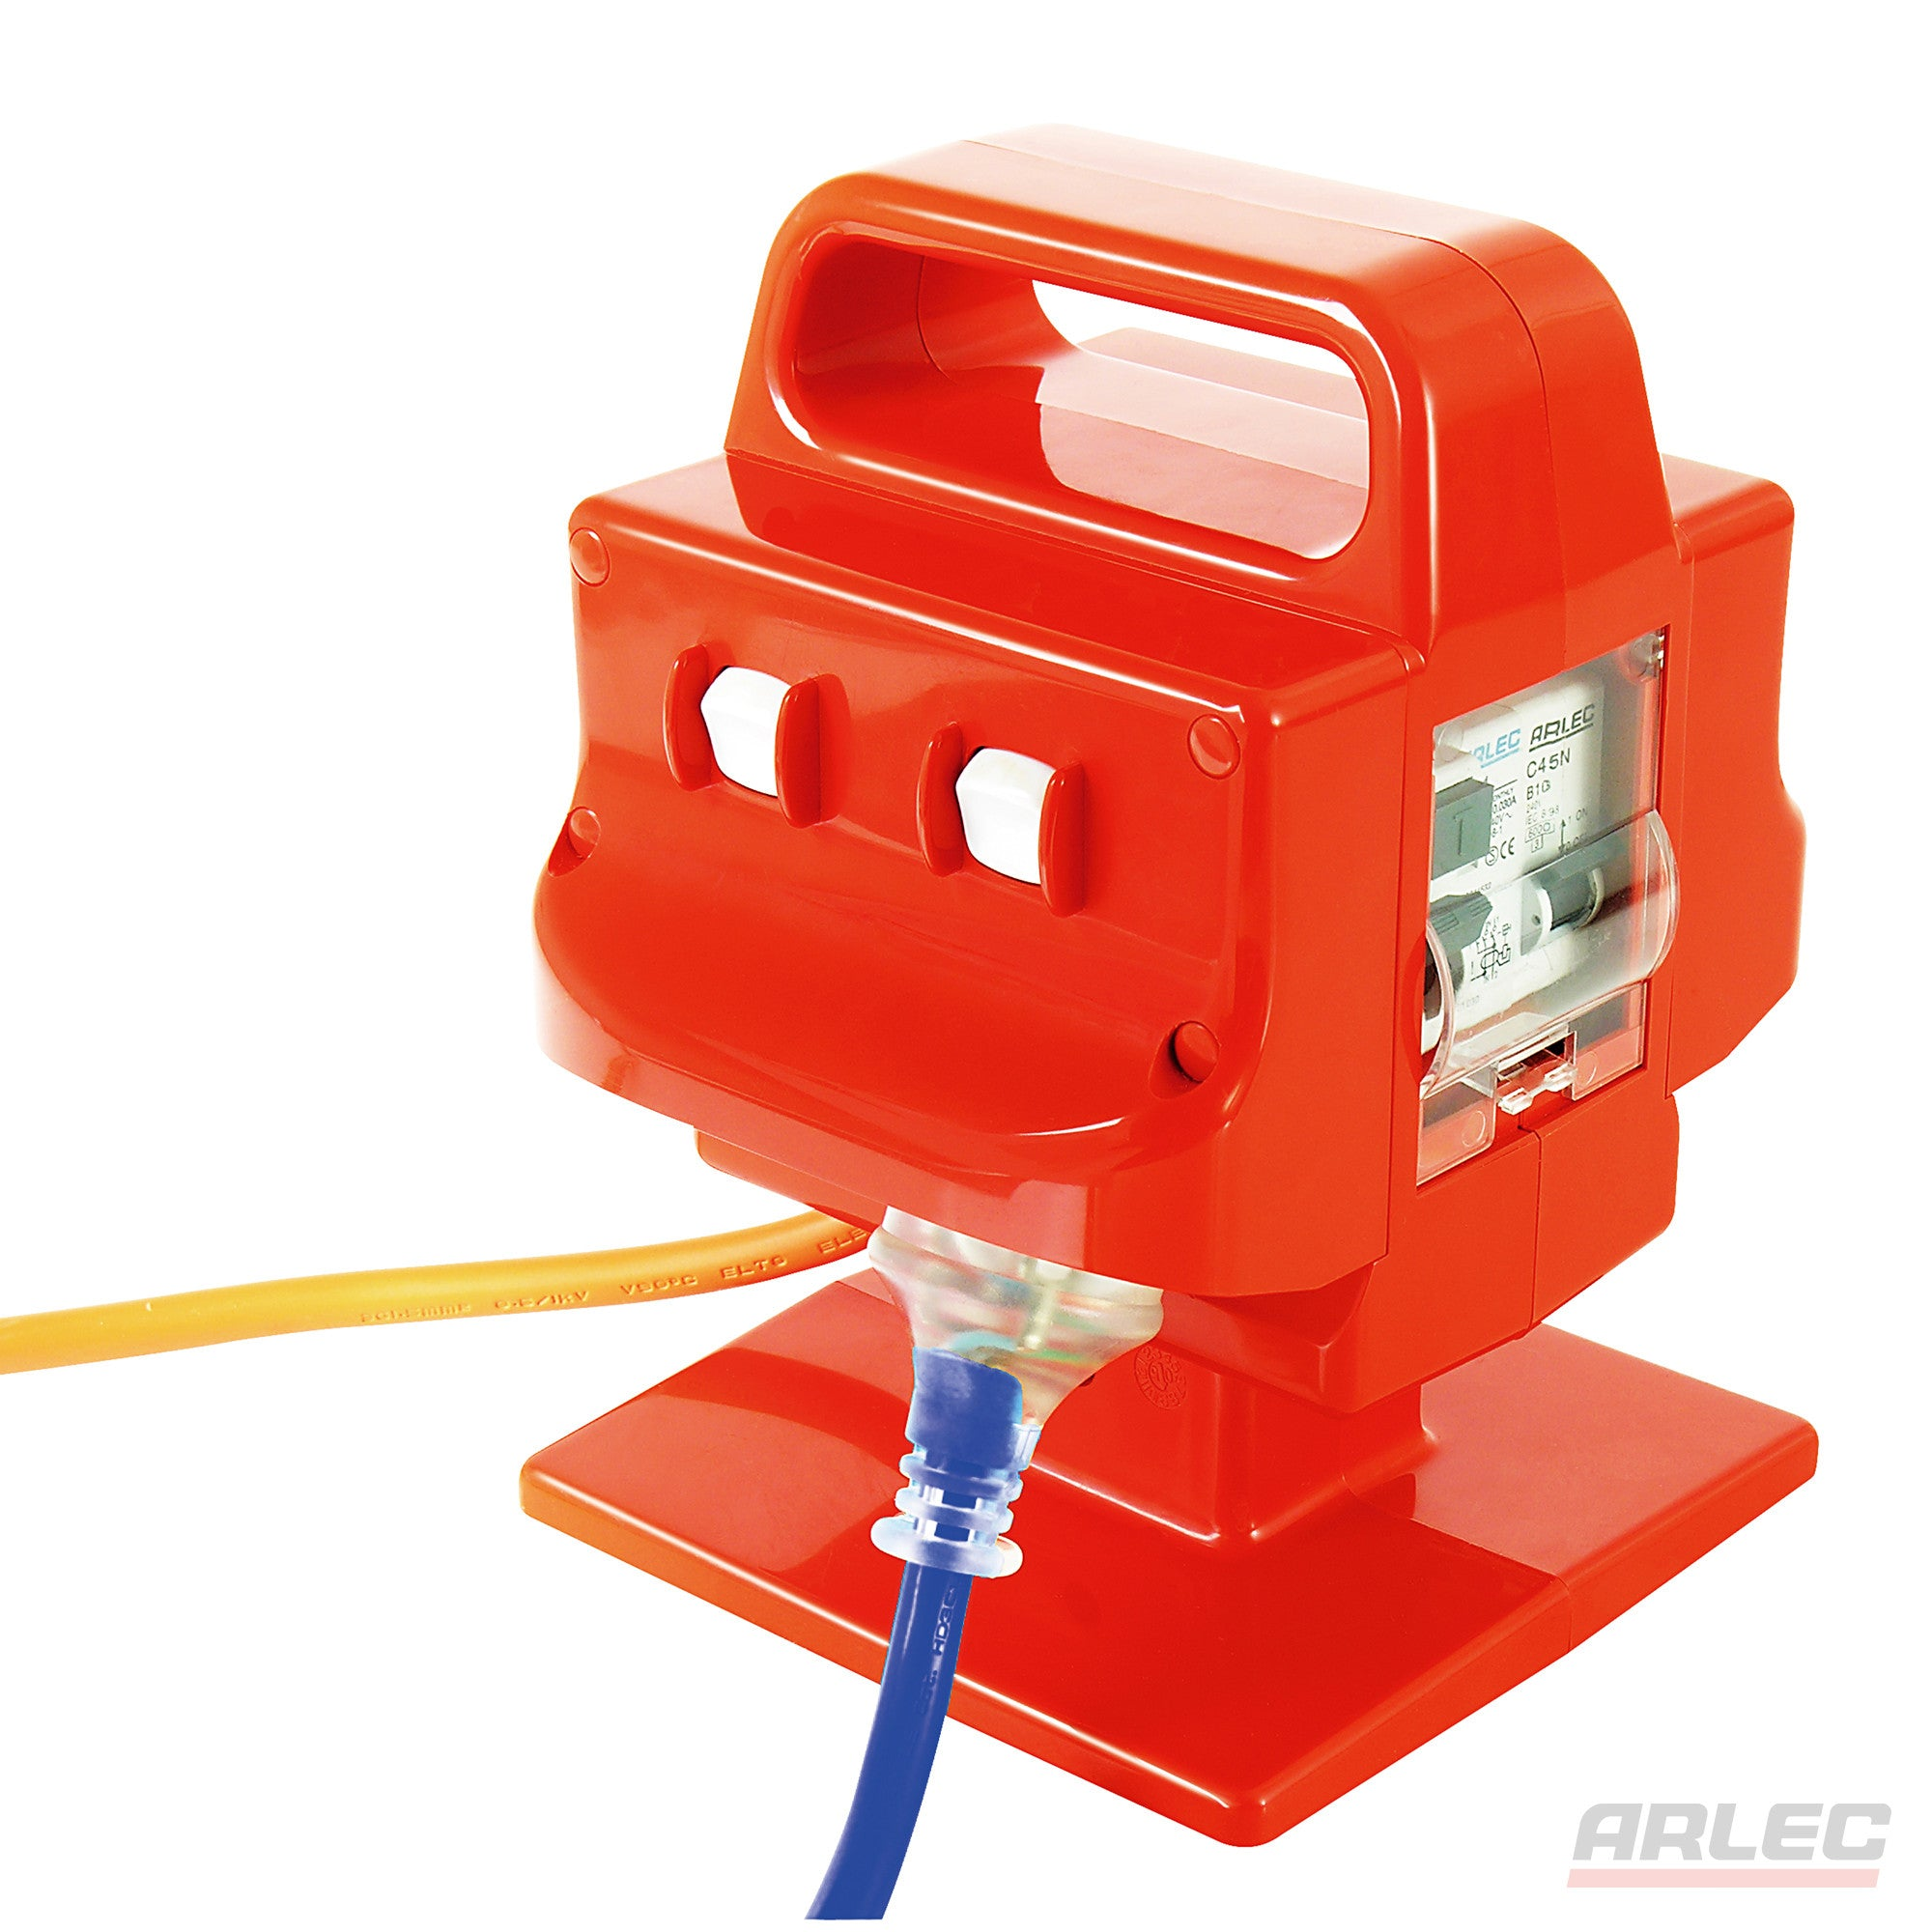 Arlec ARLEC Heavy Duty Portable 4 Outlet 15 Amp Safety Switch - PB97 - BNR Industrial